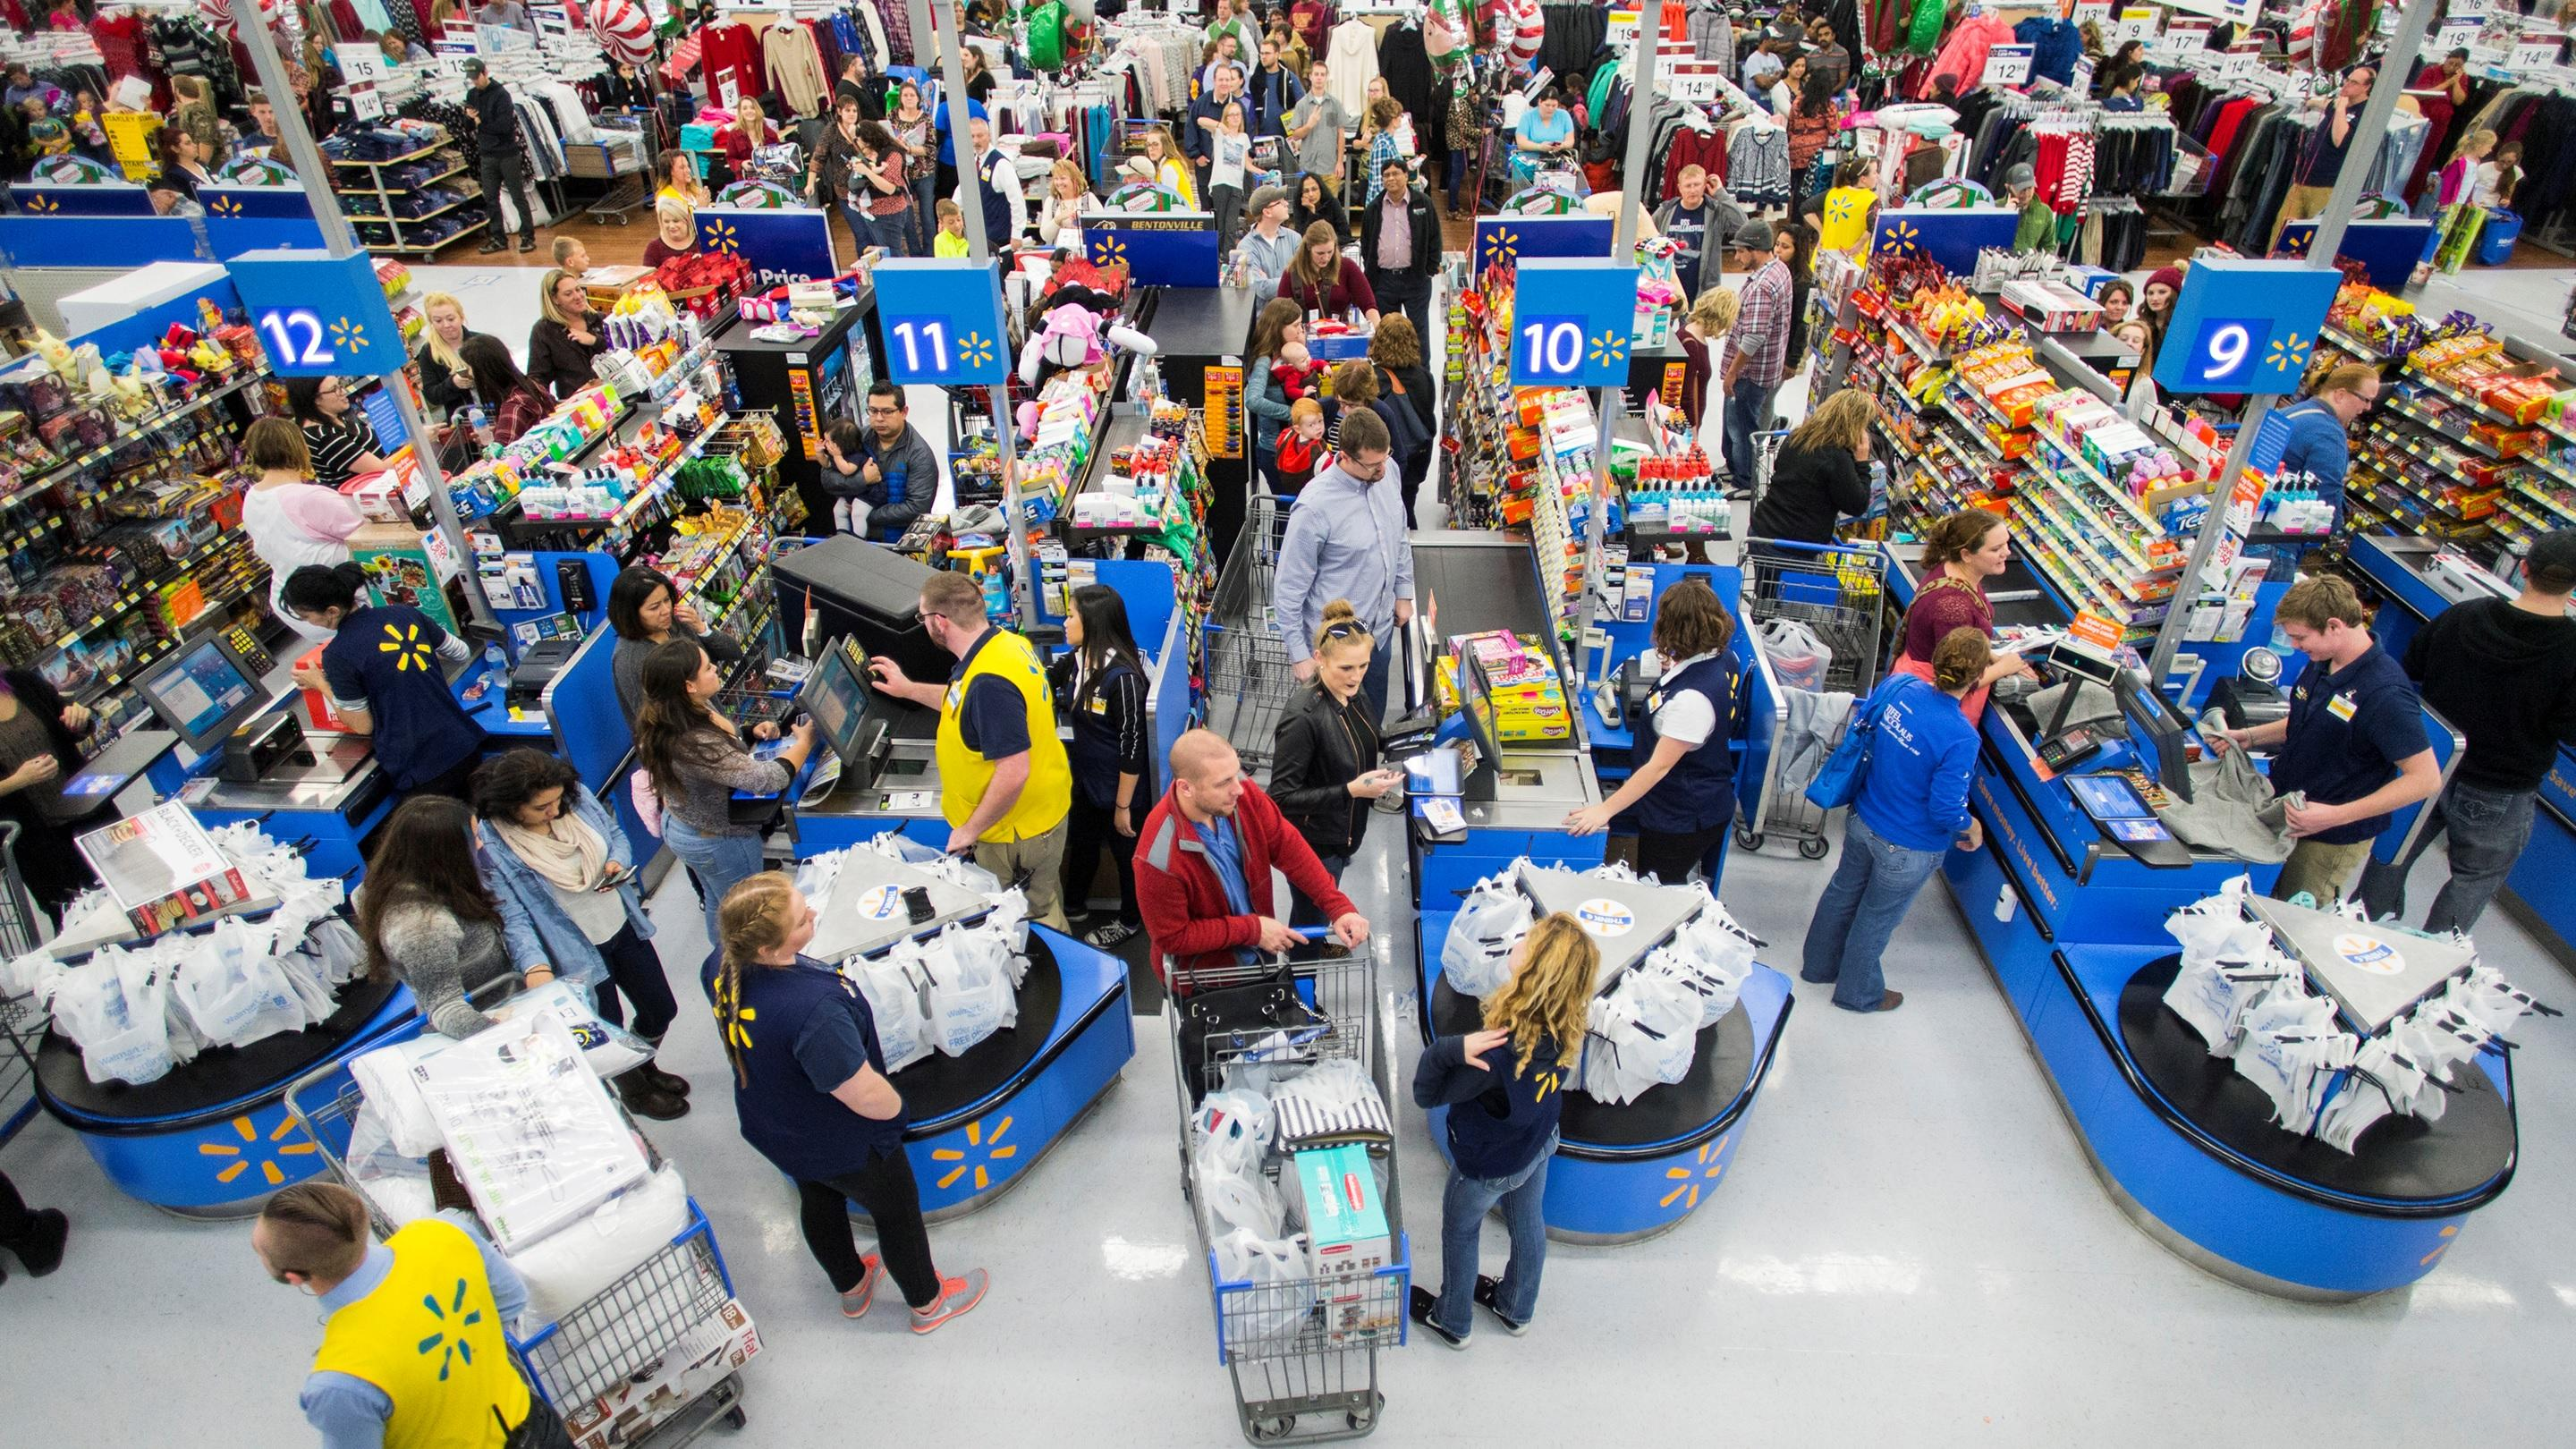 Here's everything you need to know about Wal-Mart's earnings